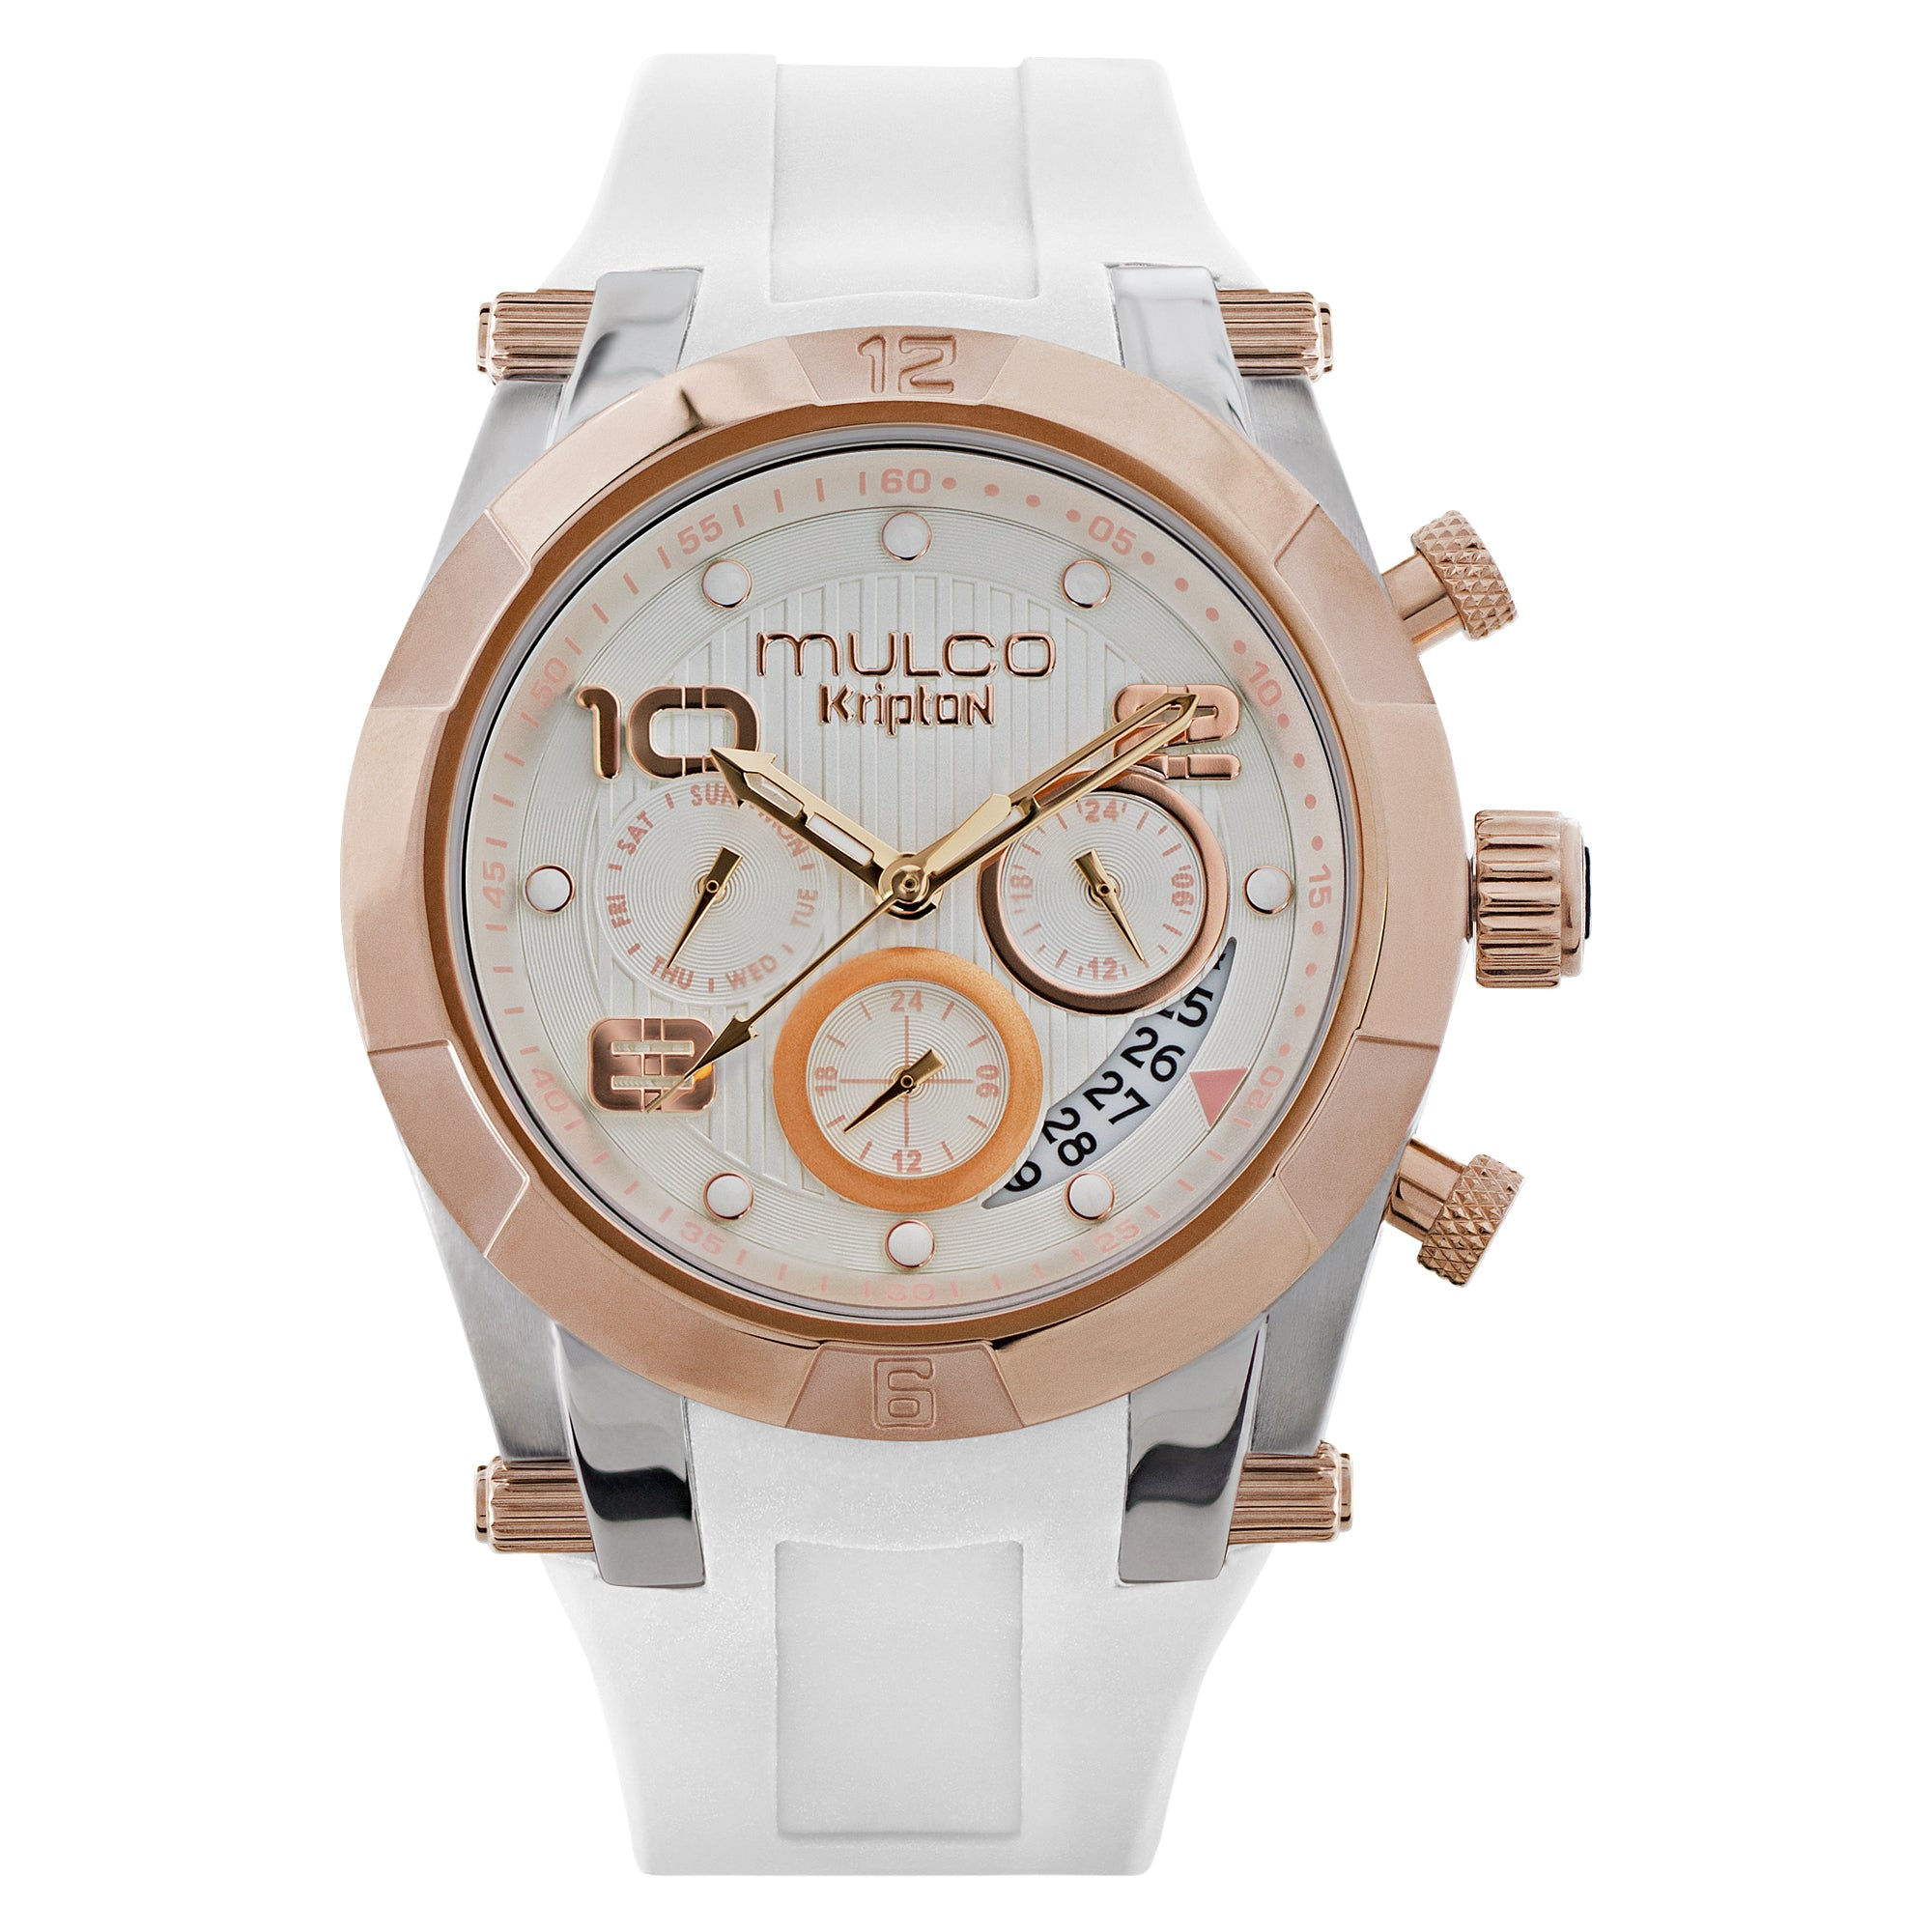 Ladies Watches | White Silicone Band | Rose Gold accents | Water Resistant